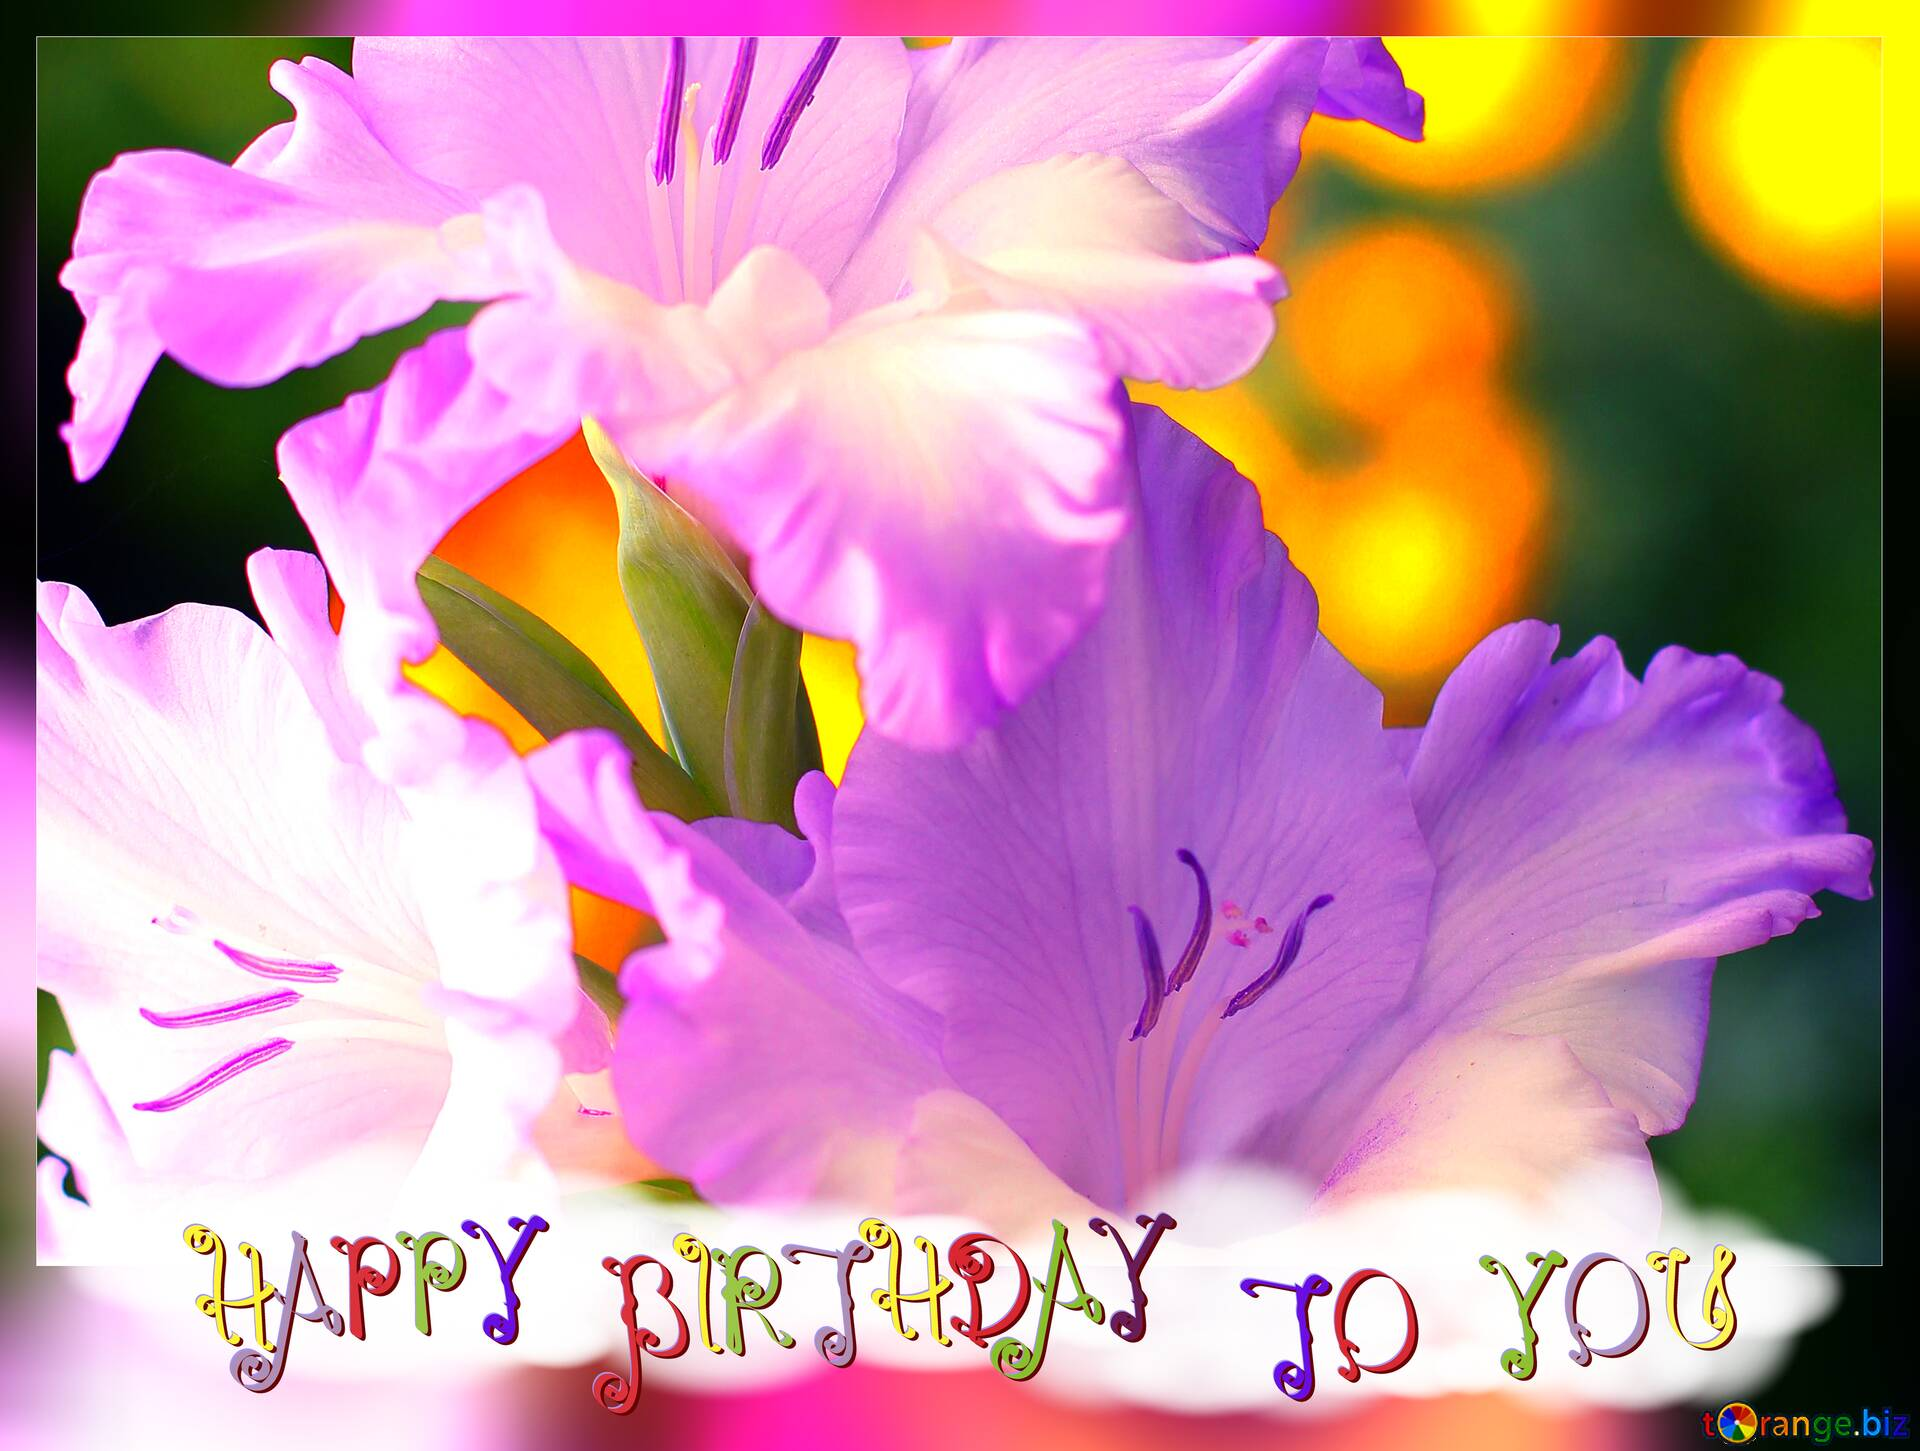 Download Free Picture Beautiful Flowers For Congratulations Frame Happy Birthday On Cc By License Free Image Stock Torange Biz Fx 215819